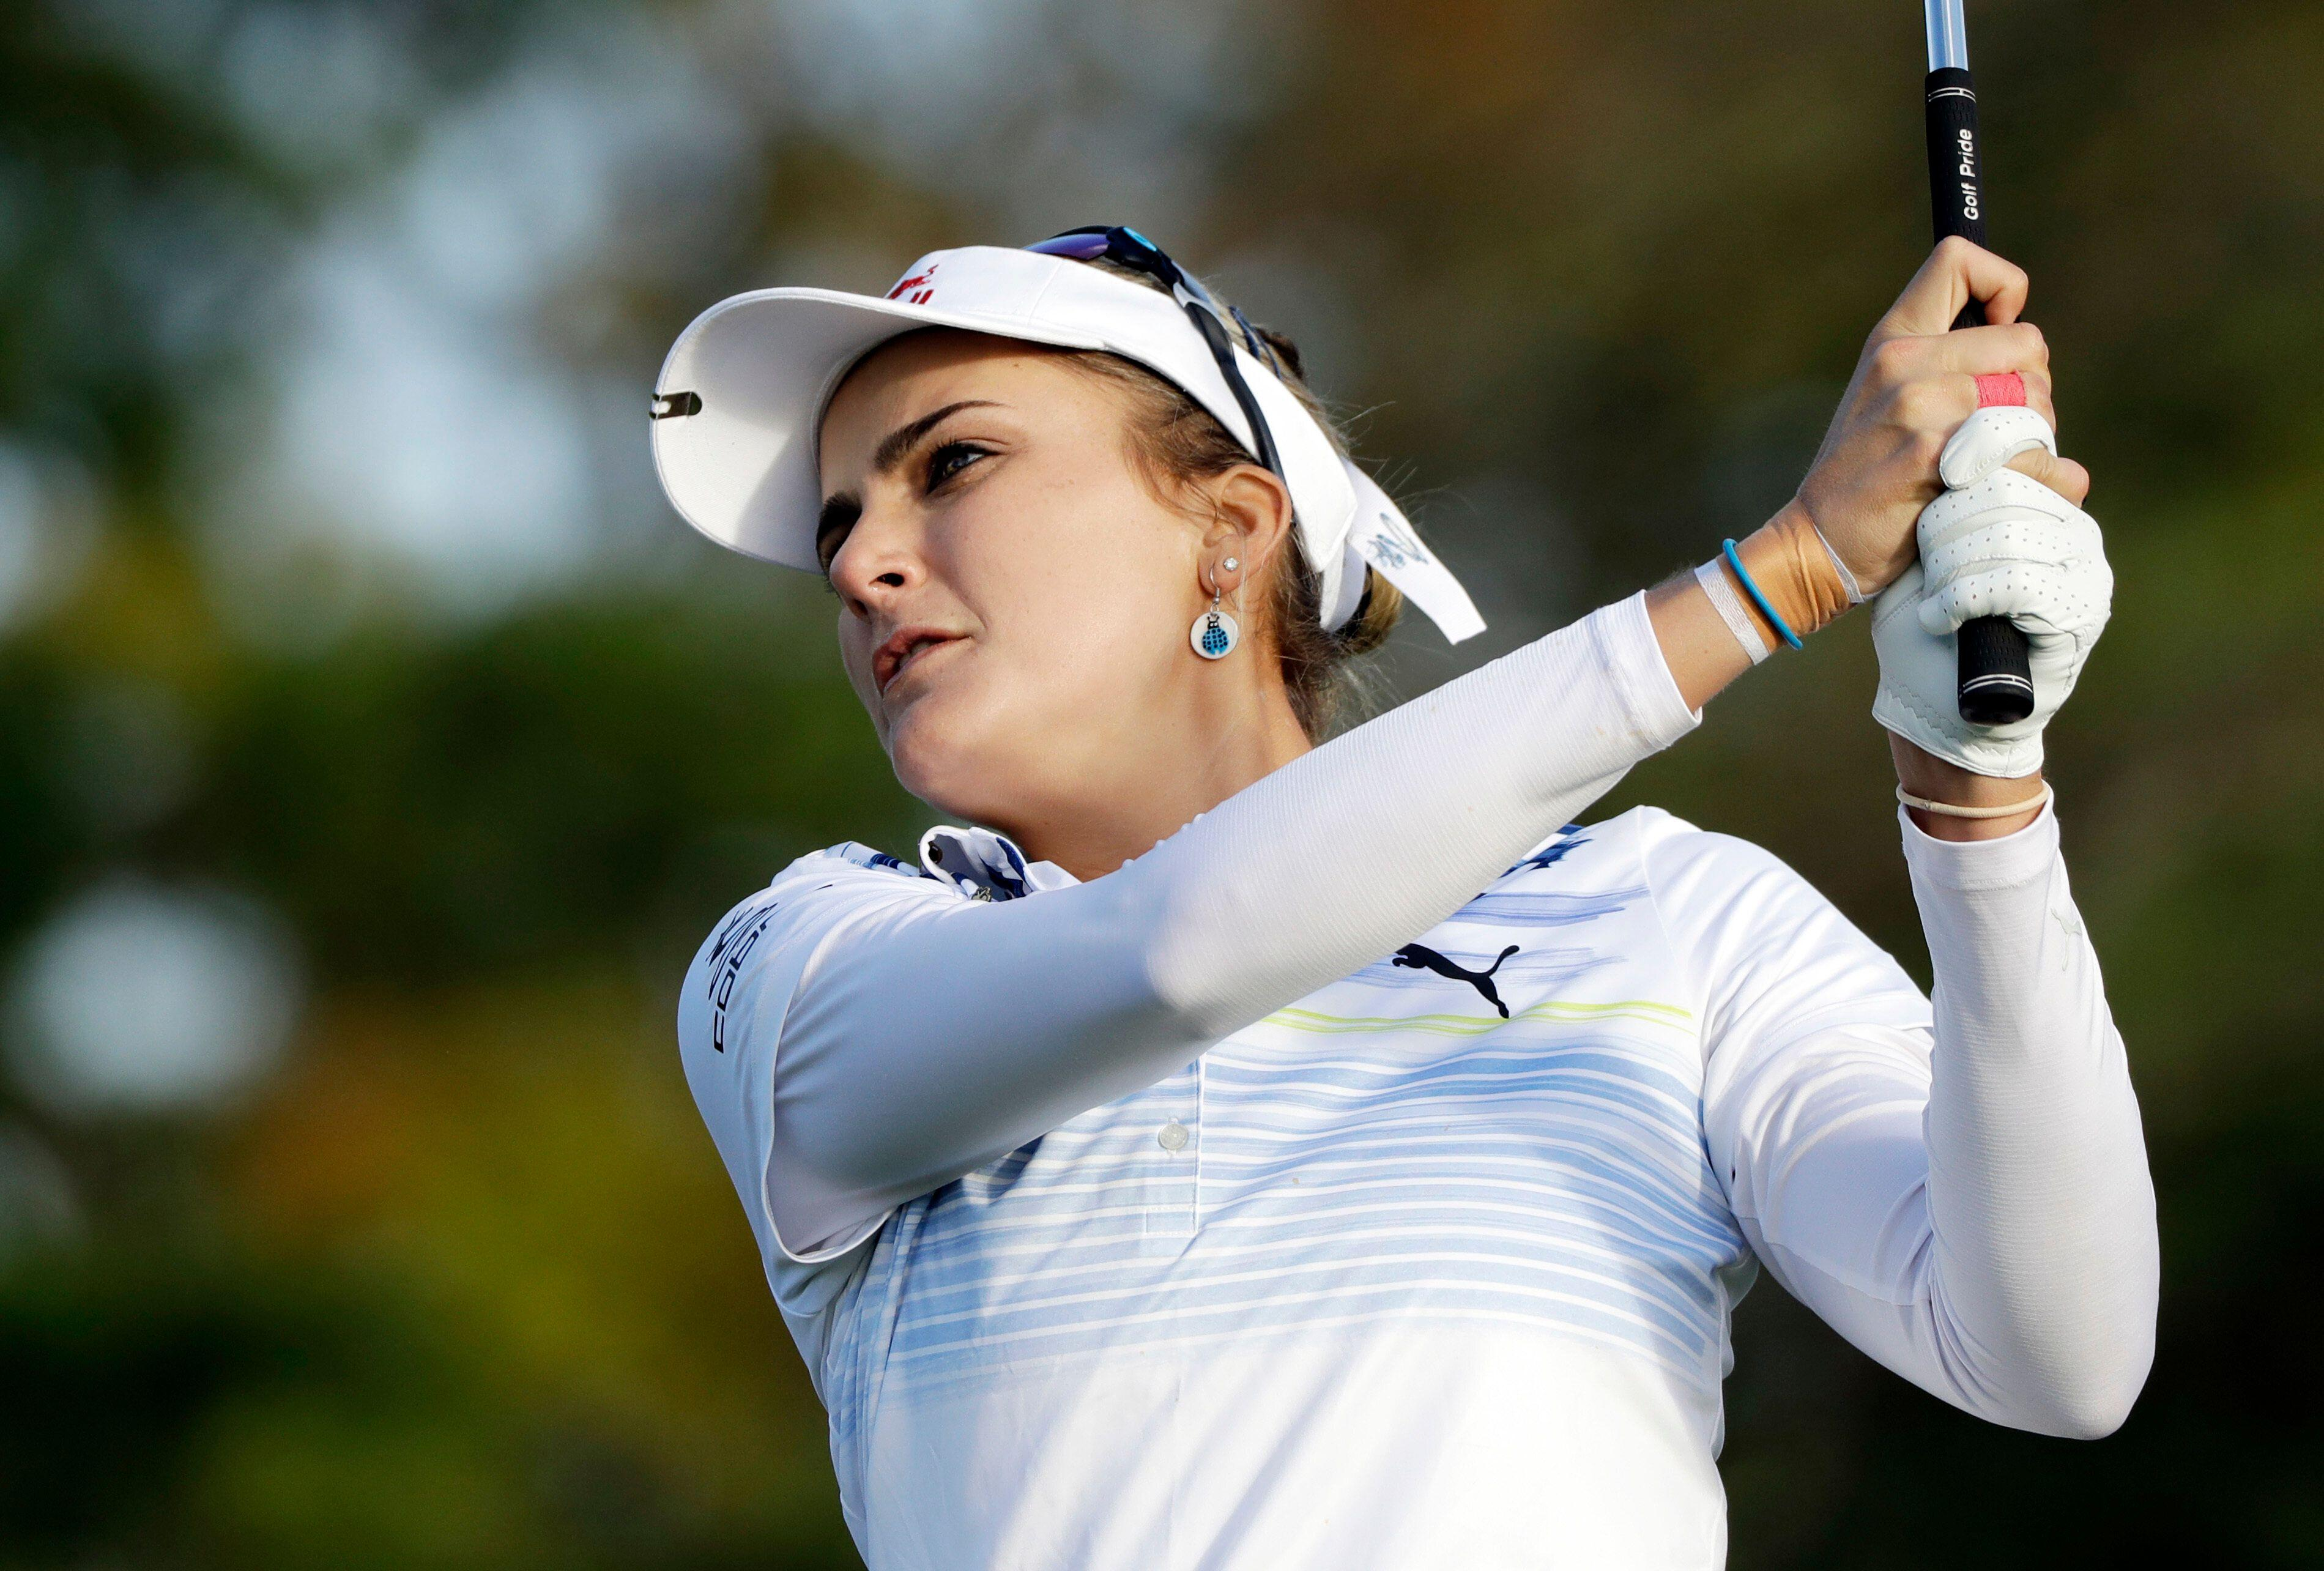 Lexi Thompson takes break from social media after golfing with Donald Trump, Rush Limbaugh - Yahoo Sports